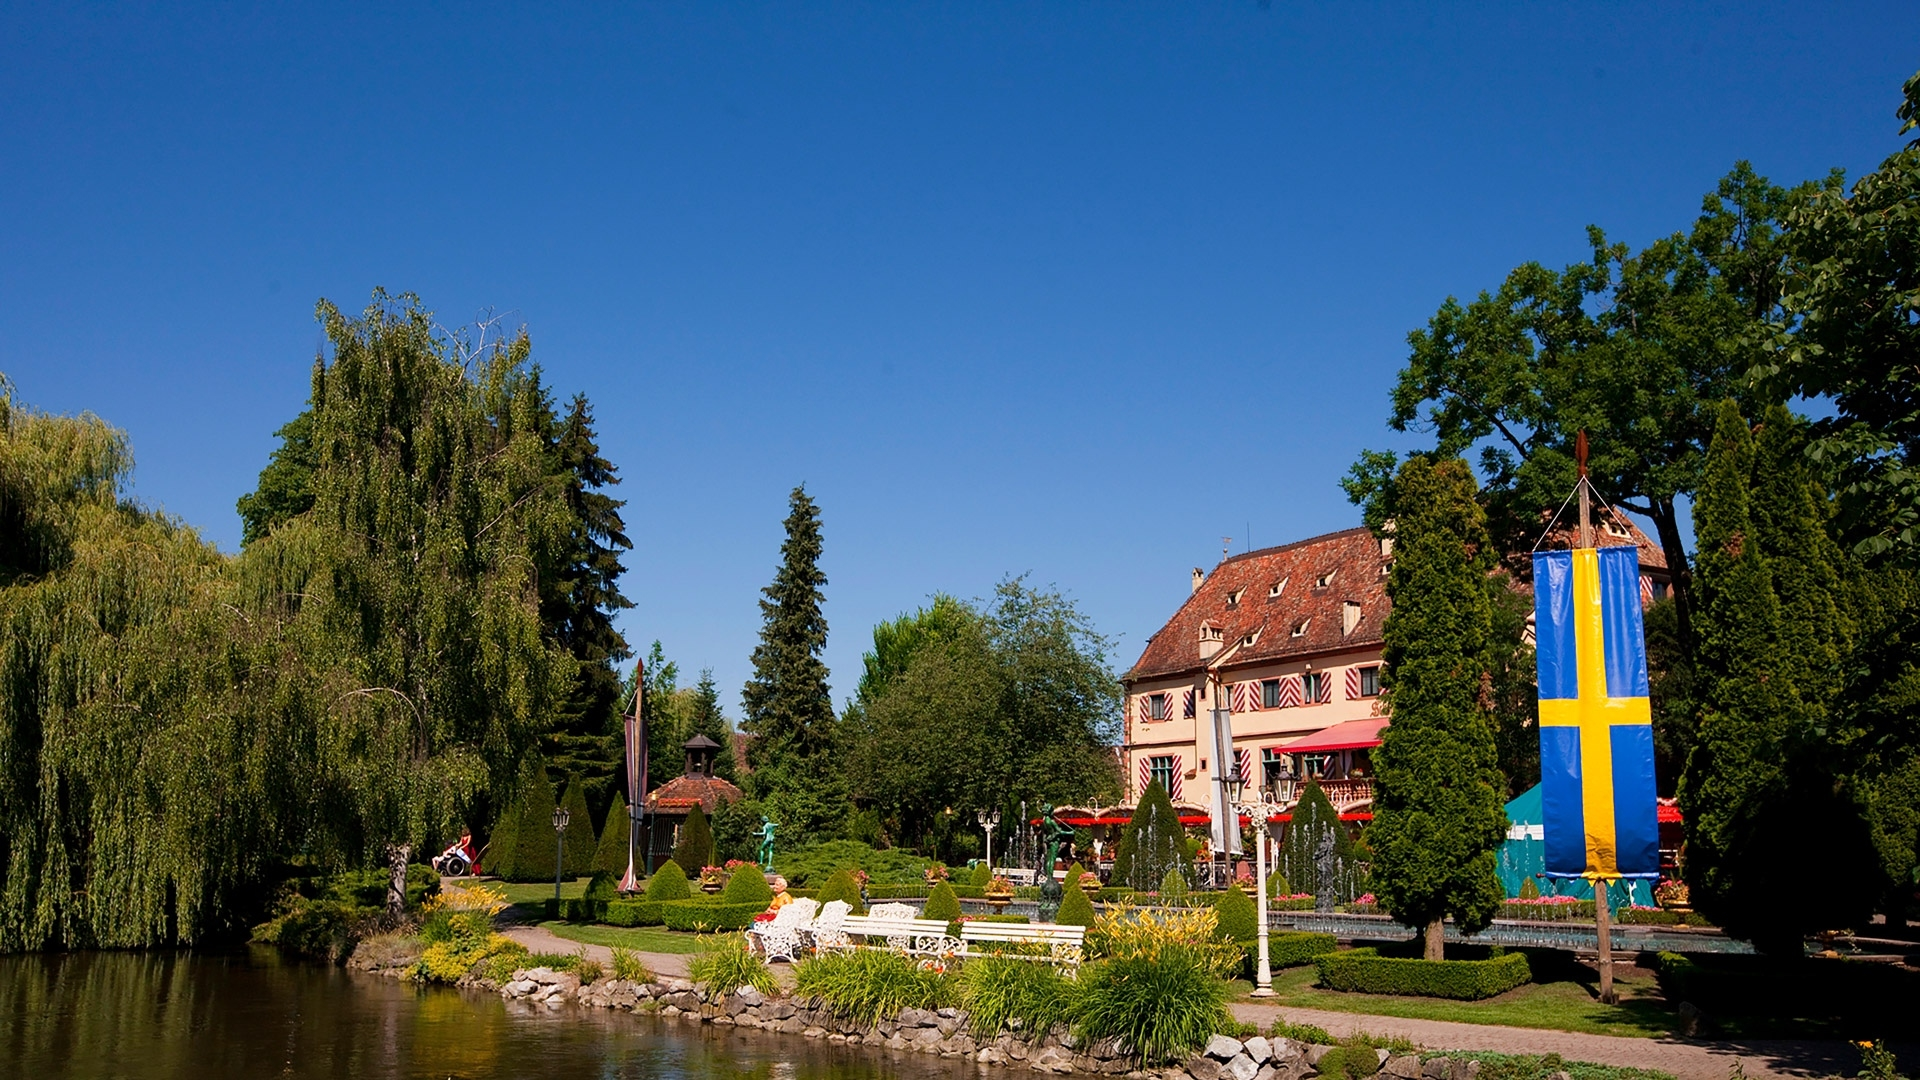 Germany - Europa-Park – One Of The World's Leading Themeparks pertaining to Europa Park Germany Map Location